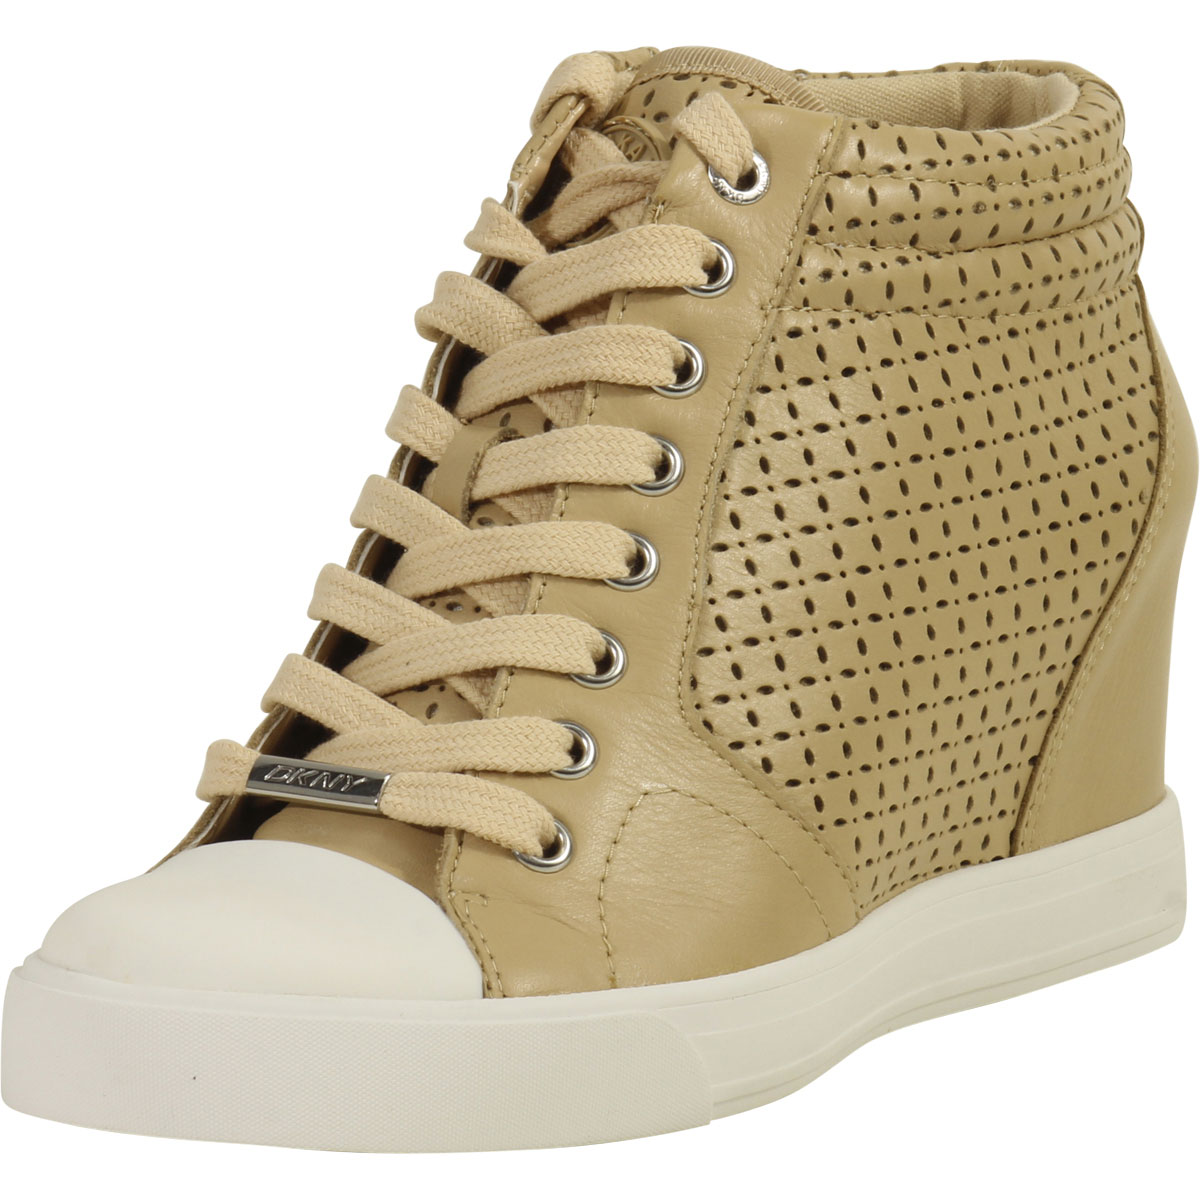 18566fc15f32 Donna Karan DKNY Women s Cindy Buff Fashion Wedge Sneakers Shoes